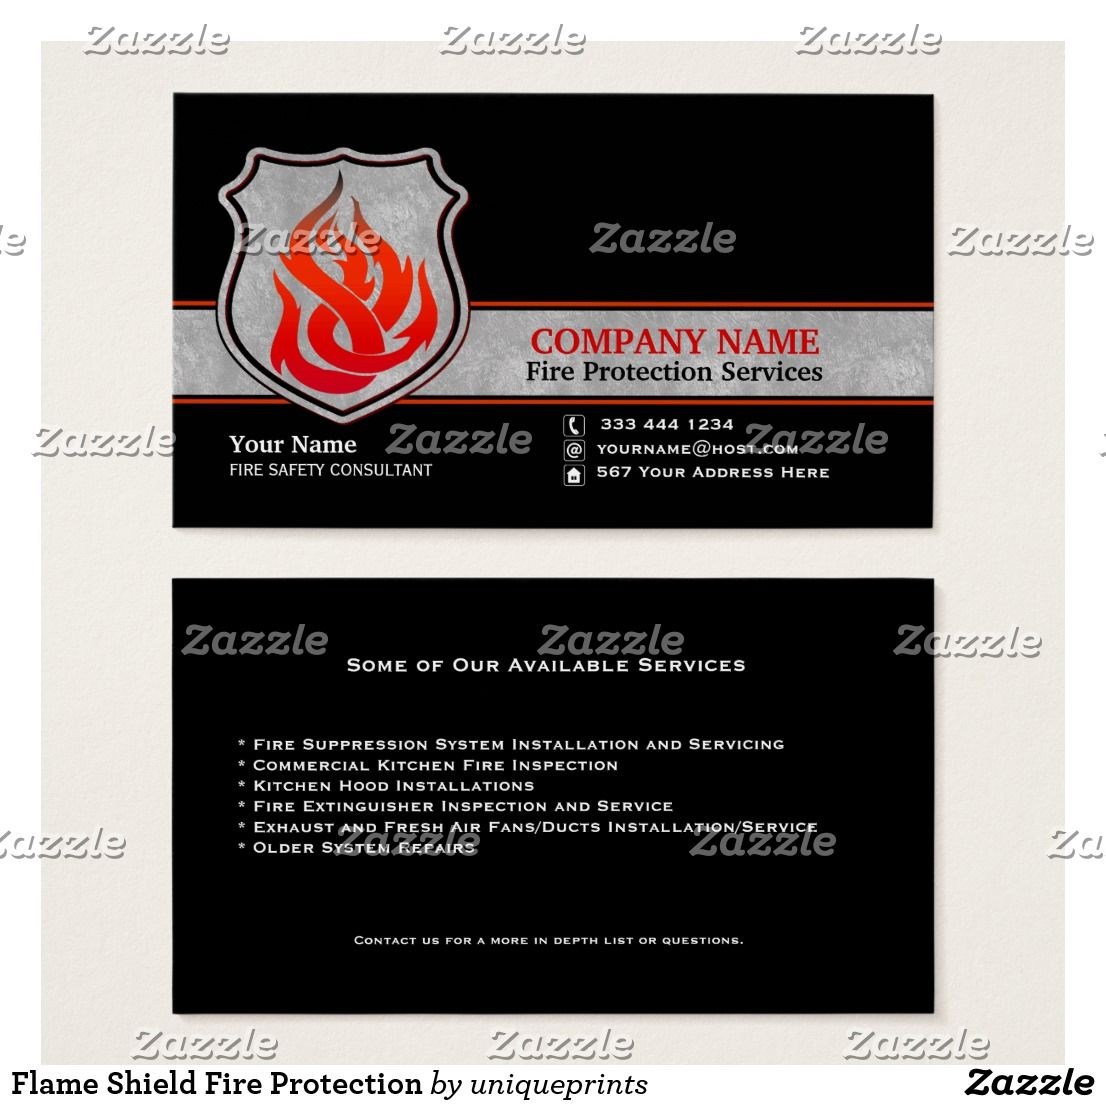 Flame Shield Fire Protection Business Card Zazzle Com In 2021 Fire Protection Custom Business Cards Fire Protection Services